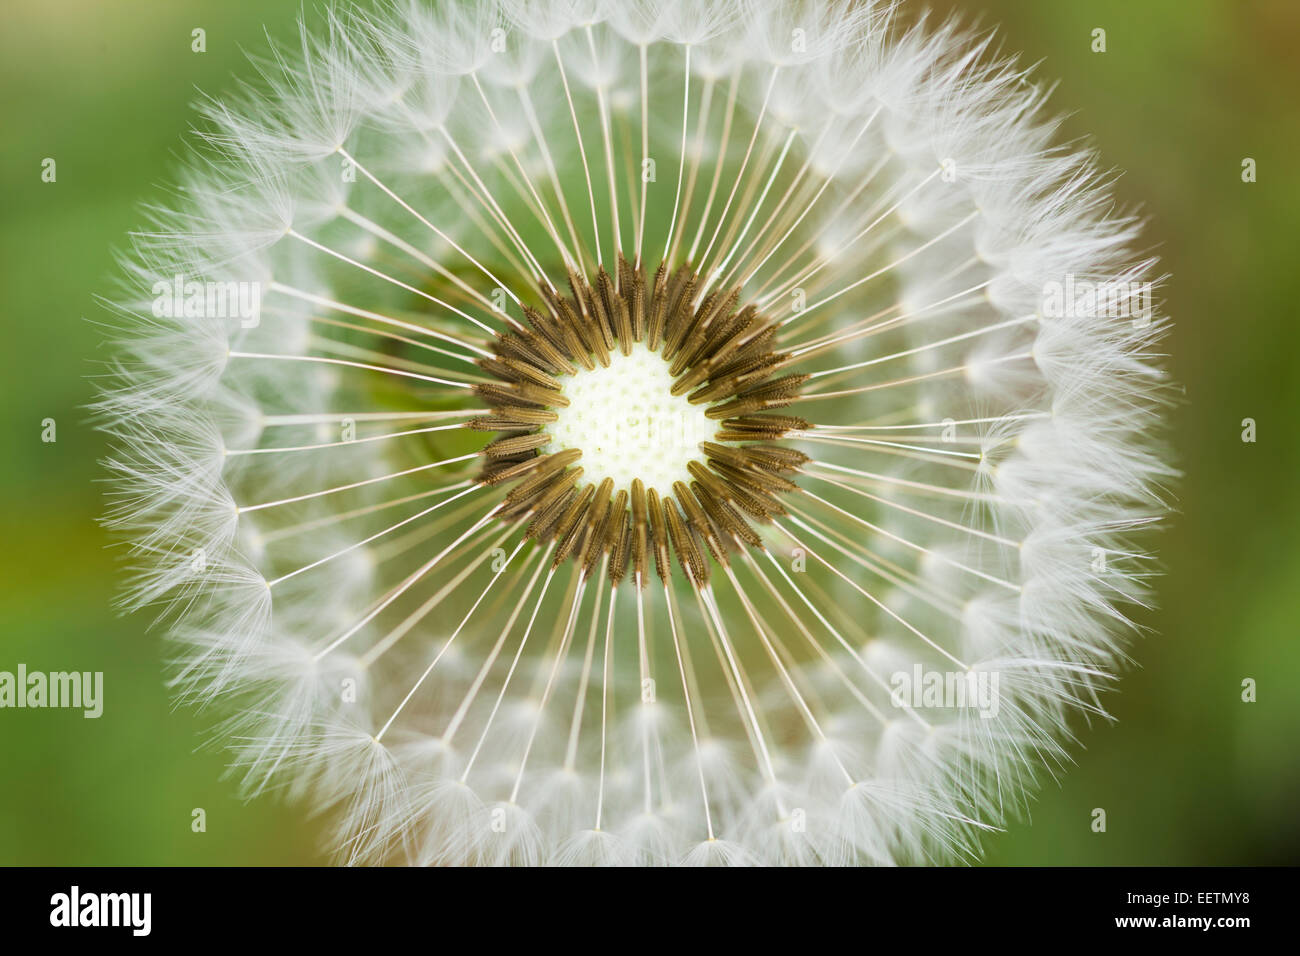 A dandelion head in seed phase photographed from above. Macro shot taken on farmland in Ireland. - Stock Image